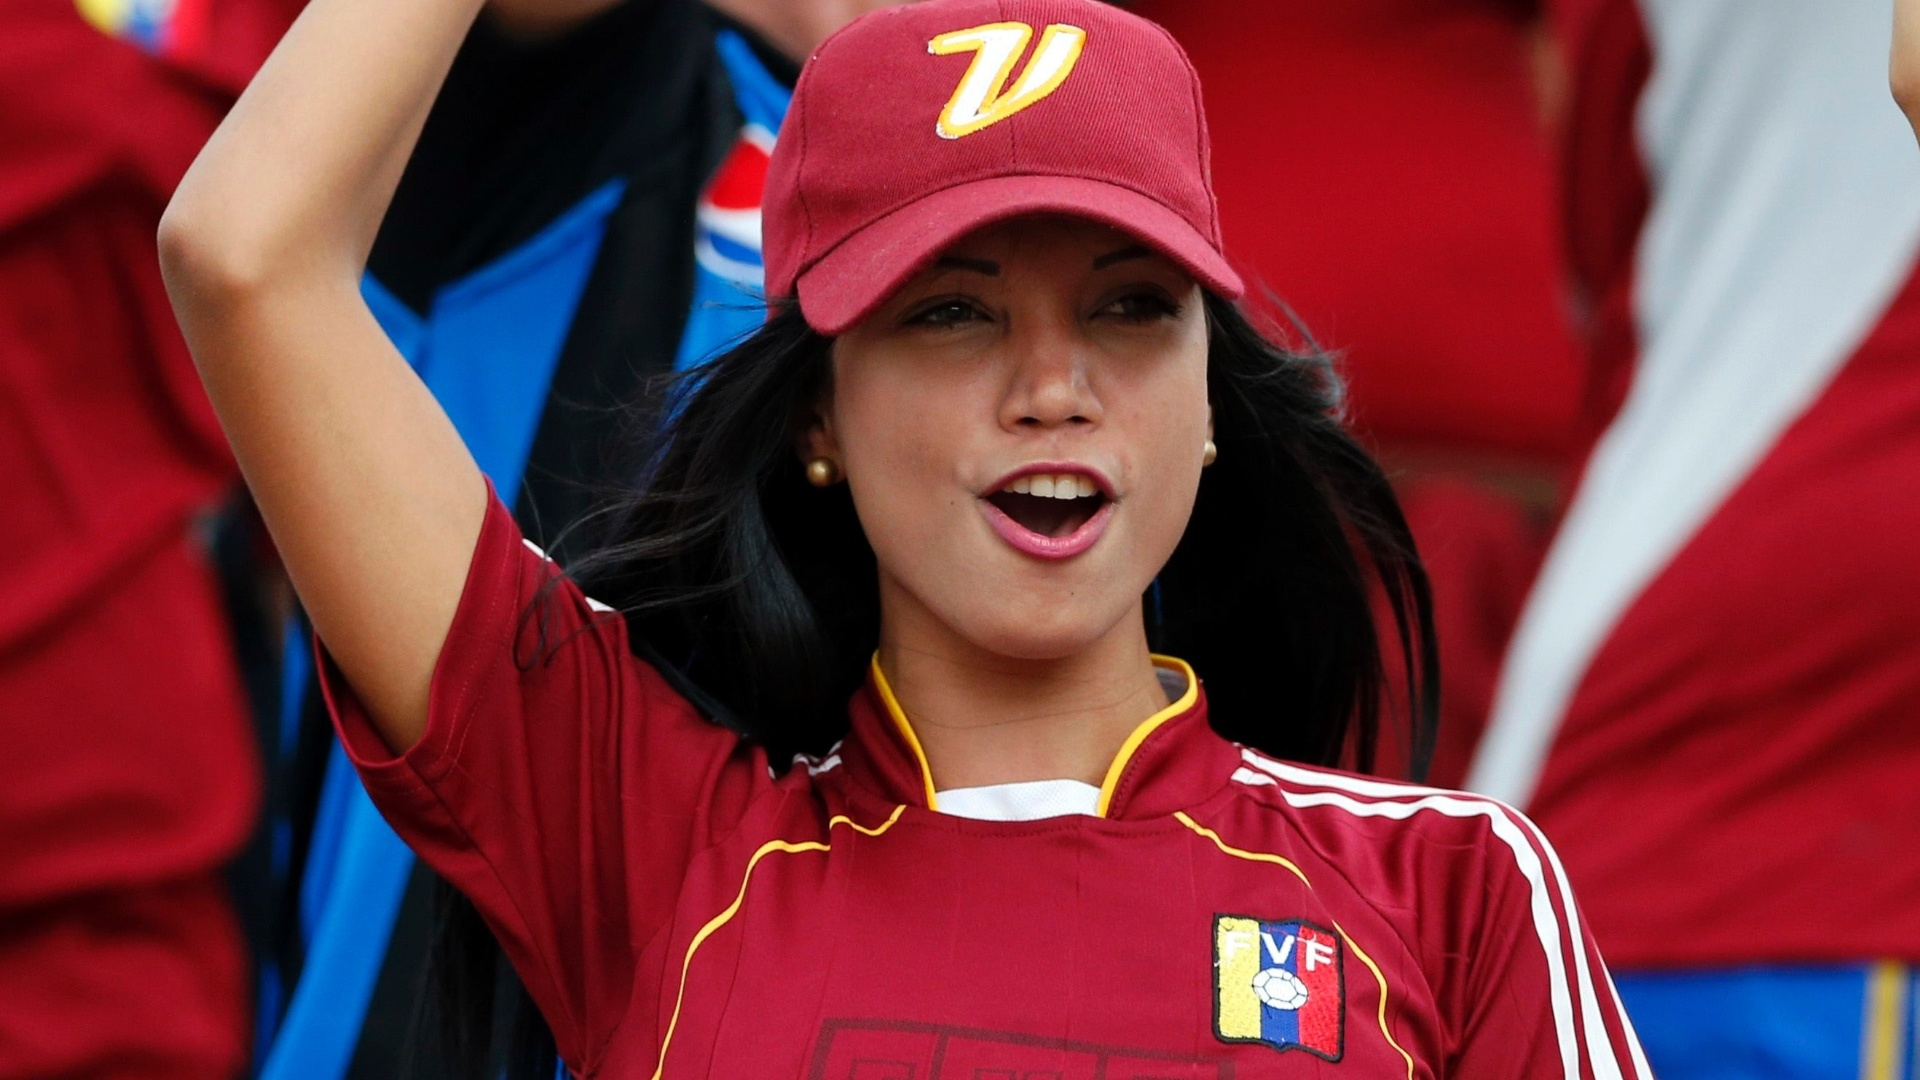 Venezuelana acompanha gritos da torcida em jogo contra o Equador nas elimintorias